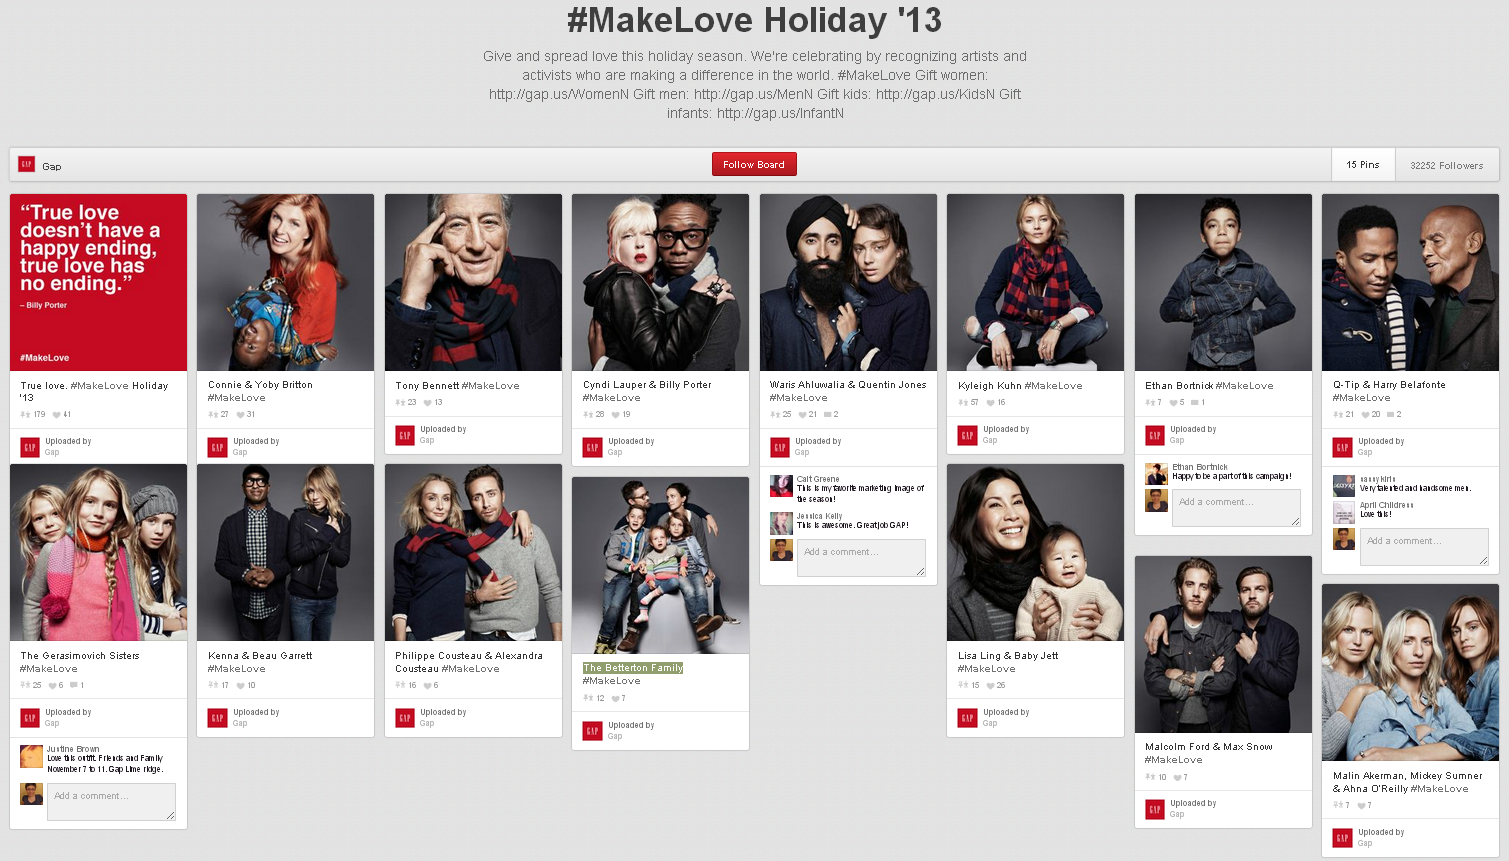 gap_make_love_2013